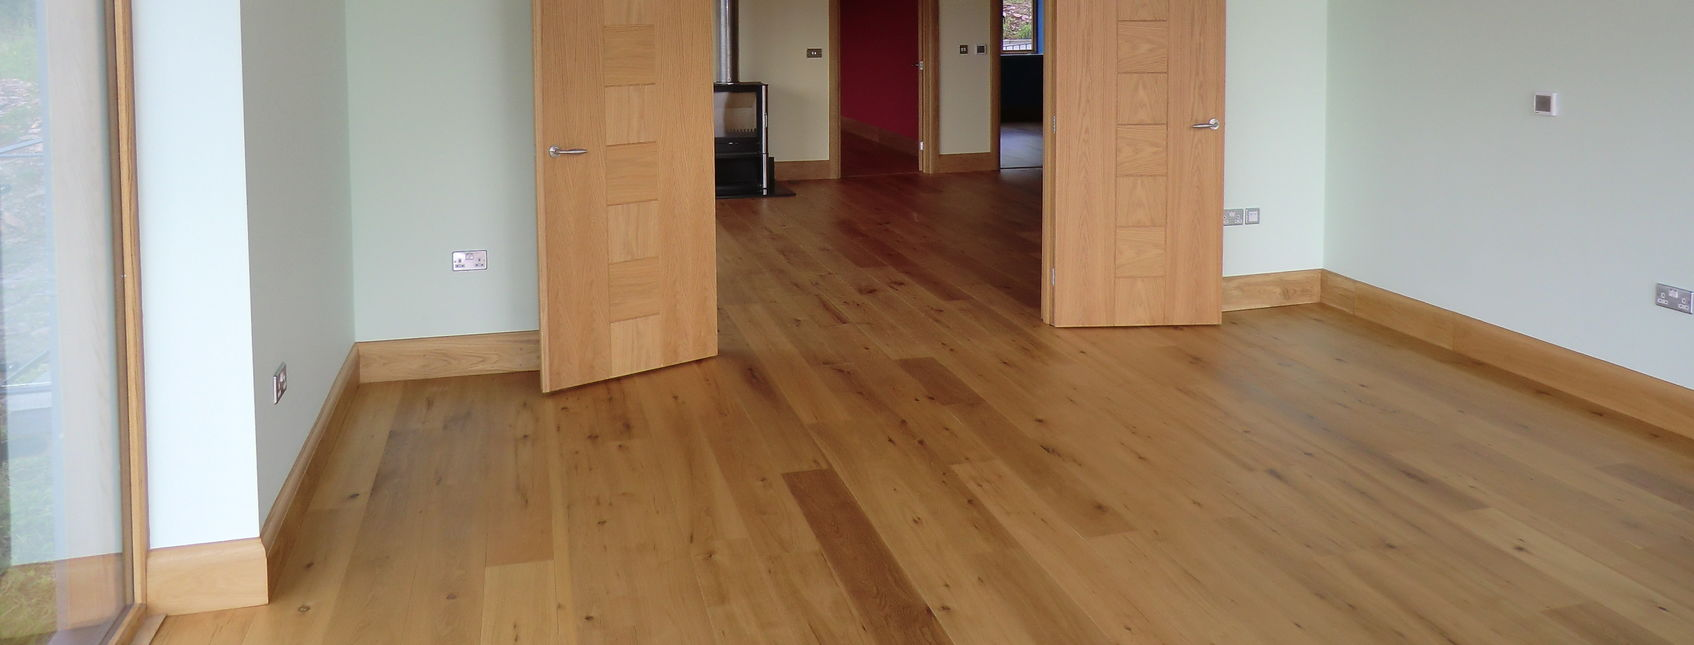 Matching In A New Wooden Floor With An Existing Wooden